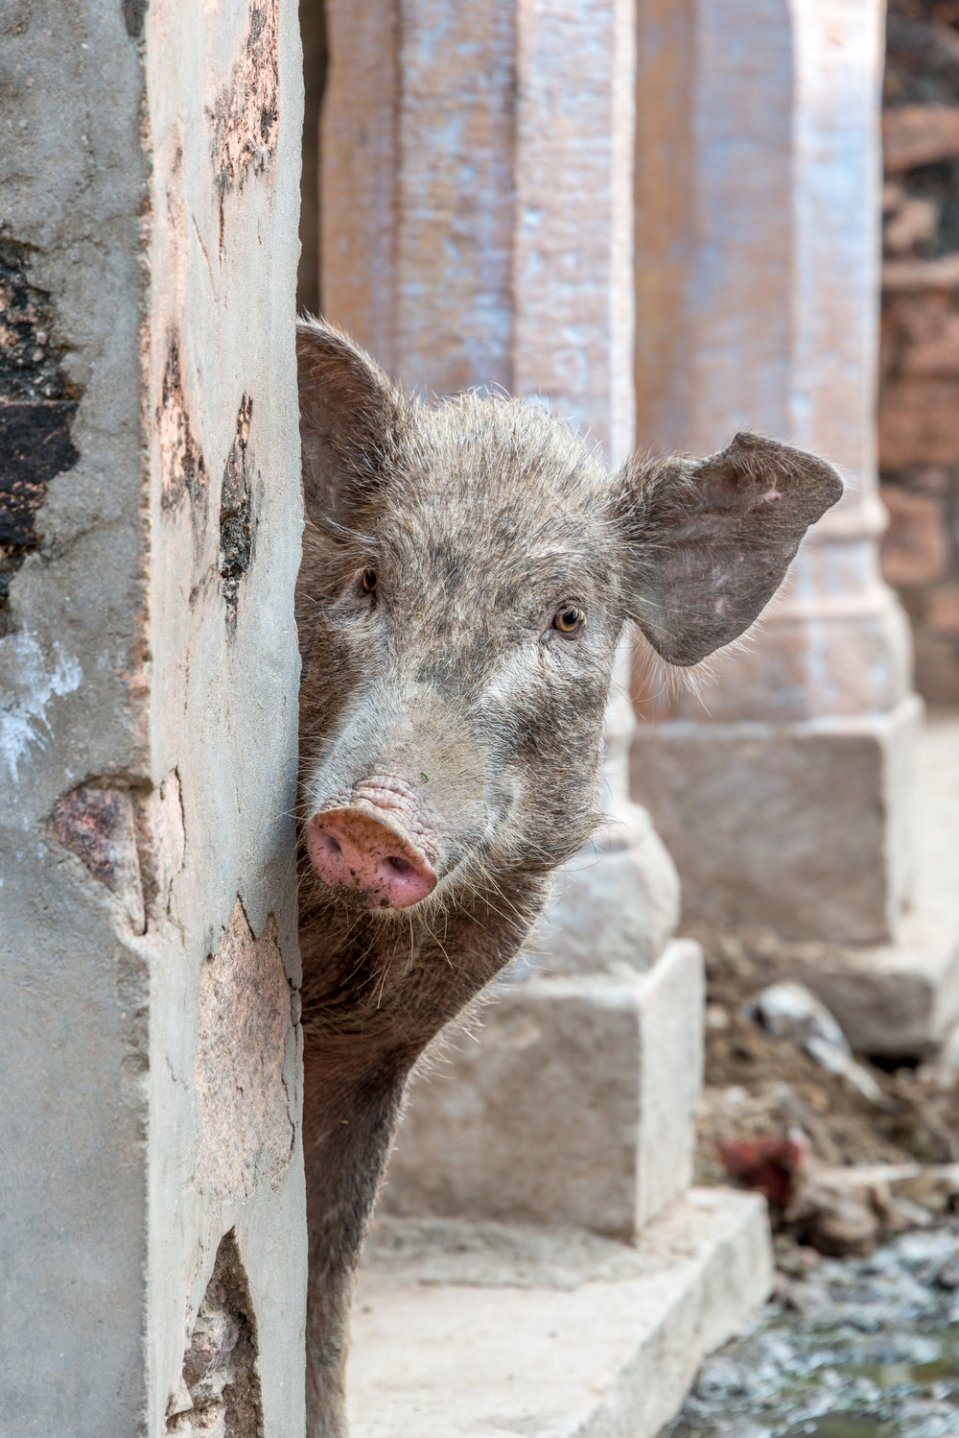 Pig peeping out from behind wall